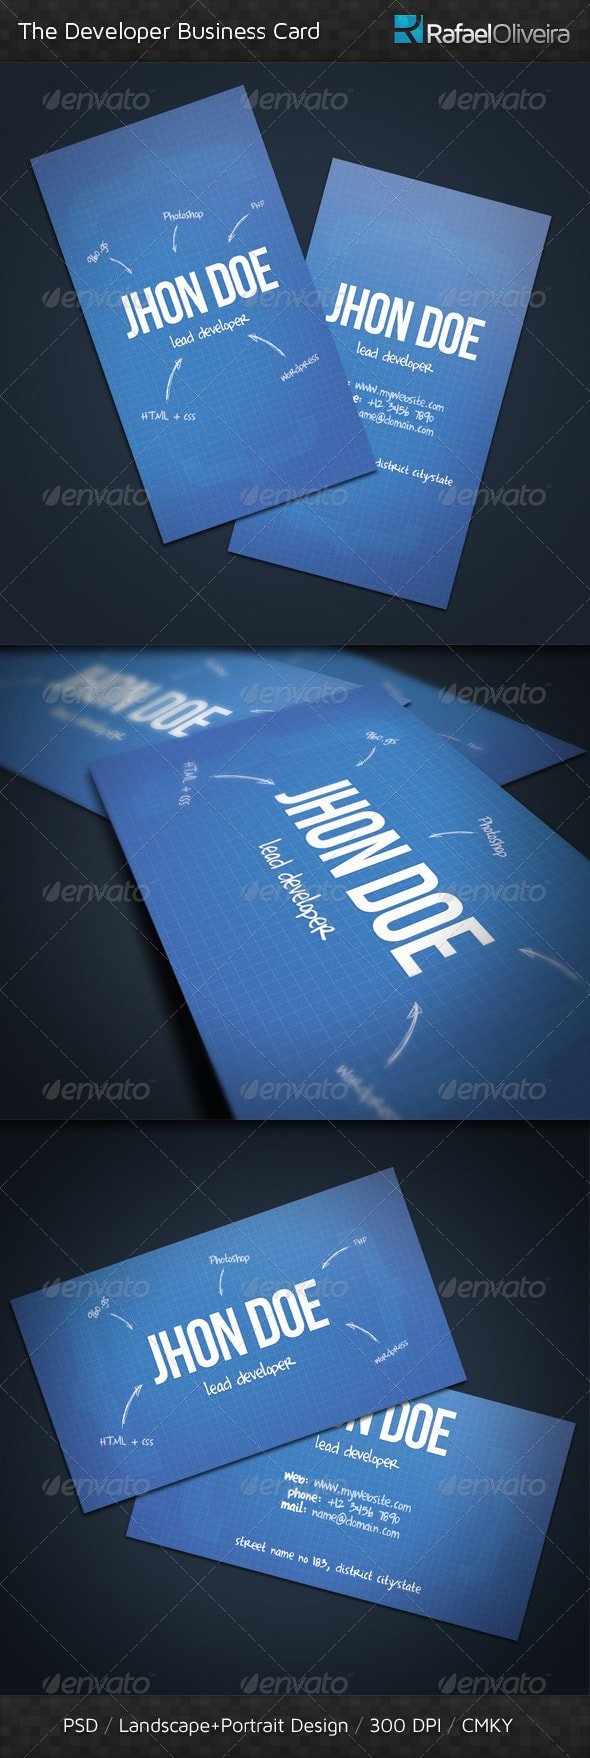 25 Best Business Card Templates (Photoshop Designs) 2017